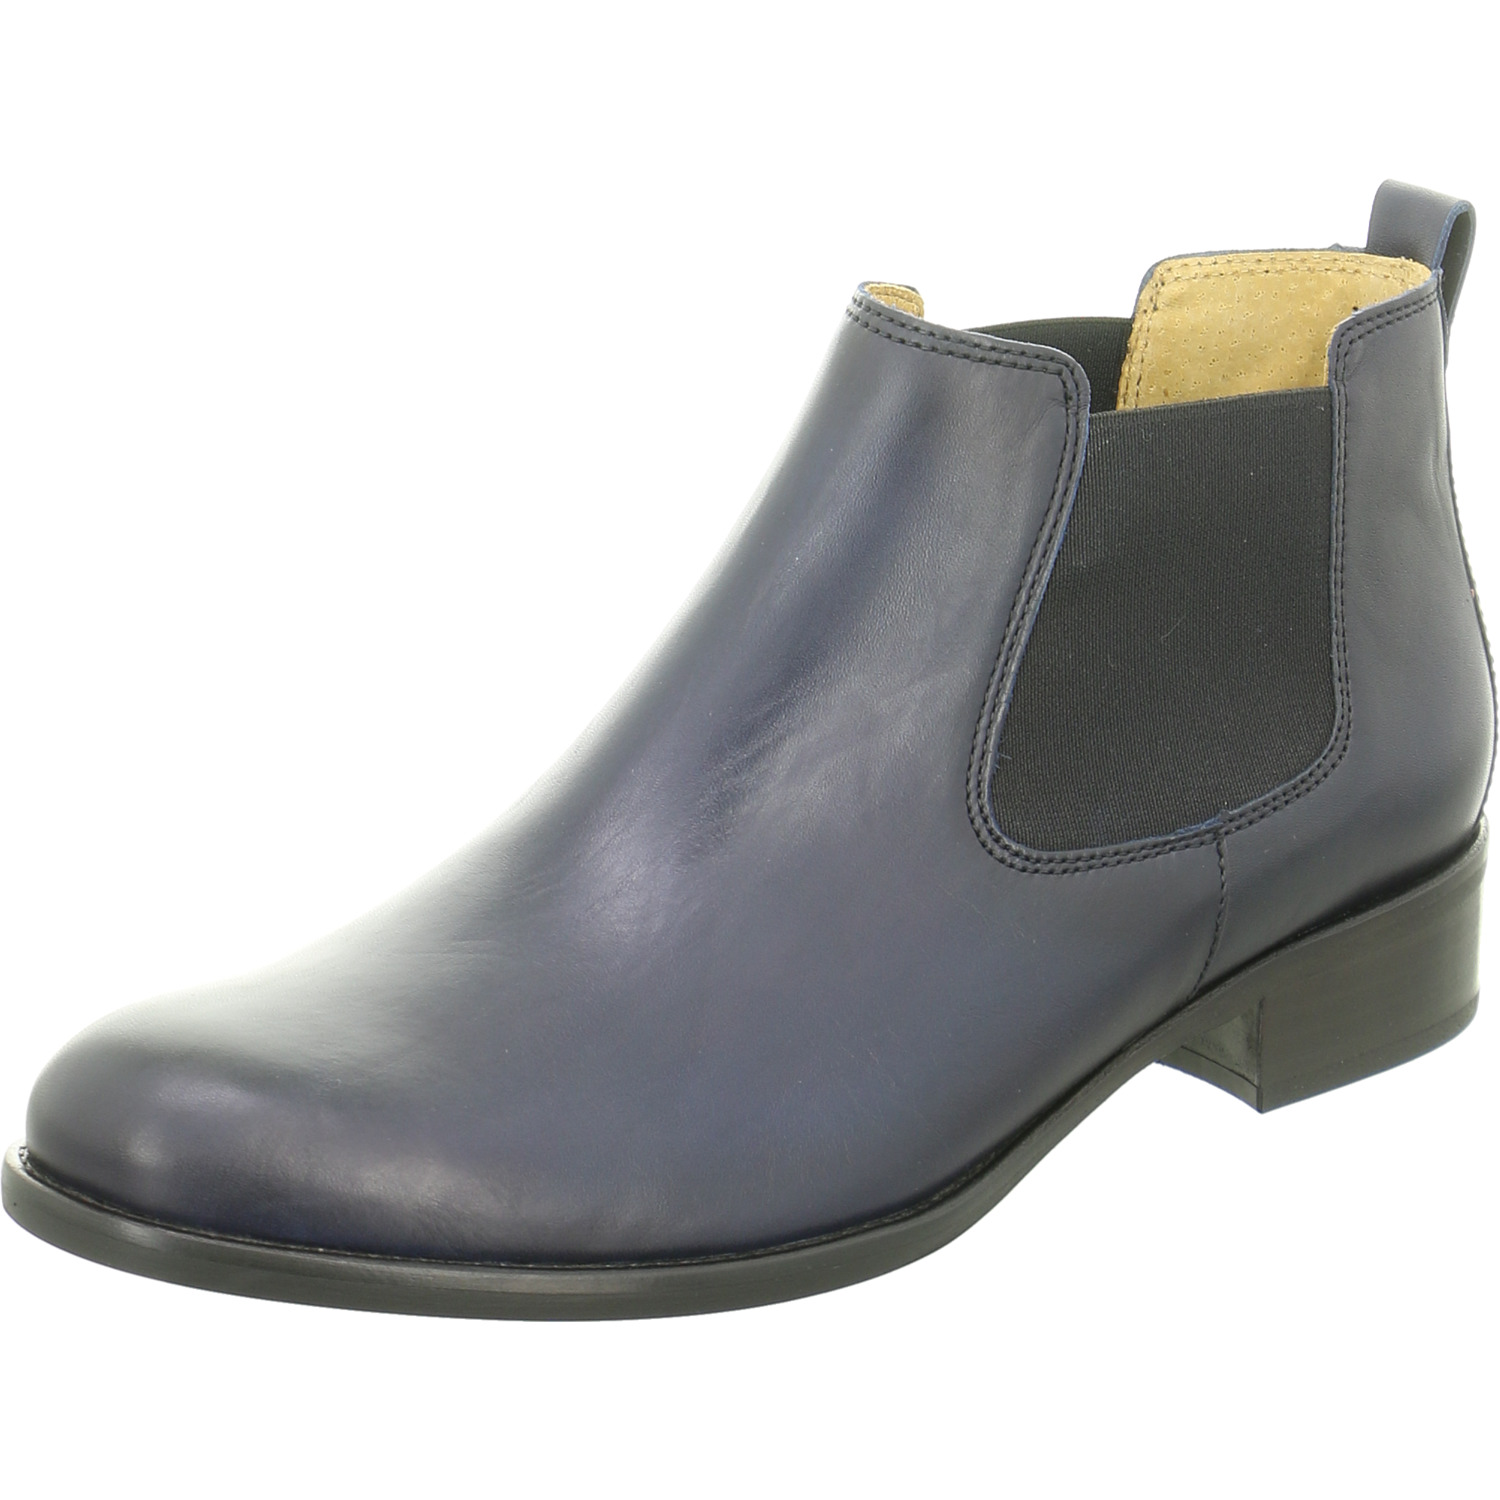 Gabor 91.640.56 blue smooth leather